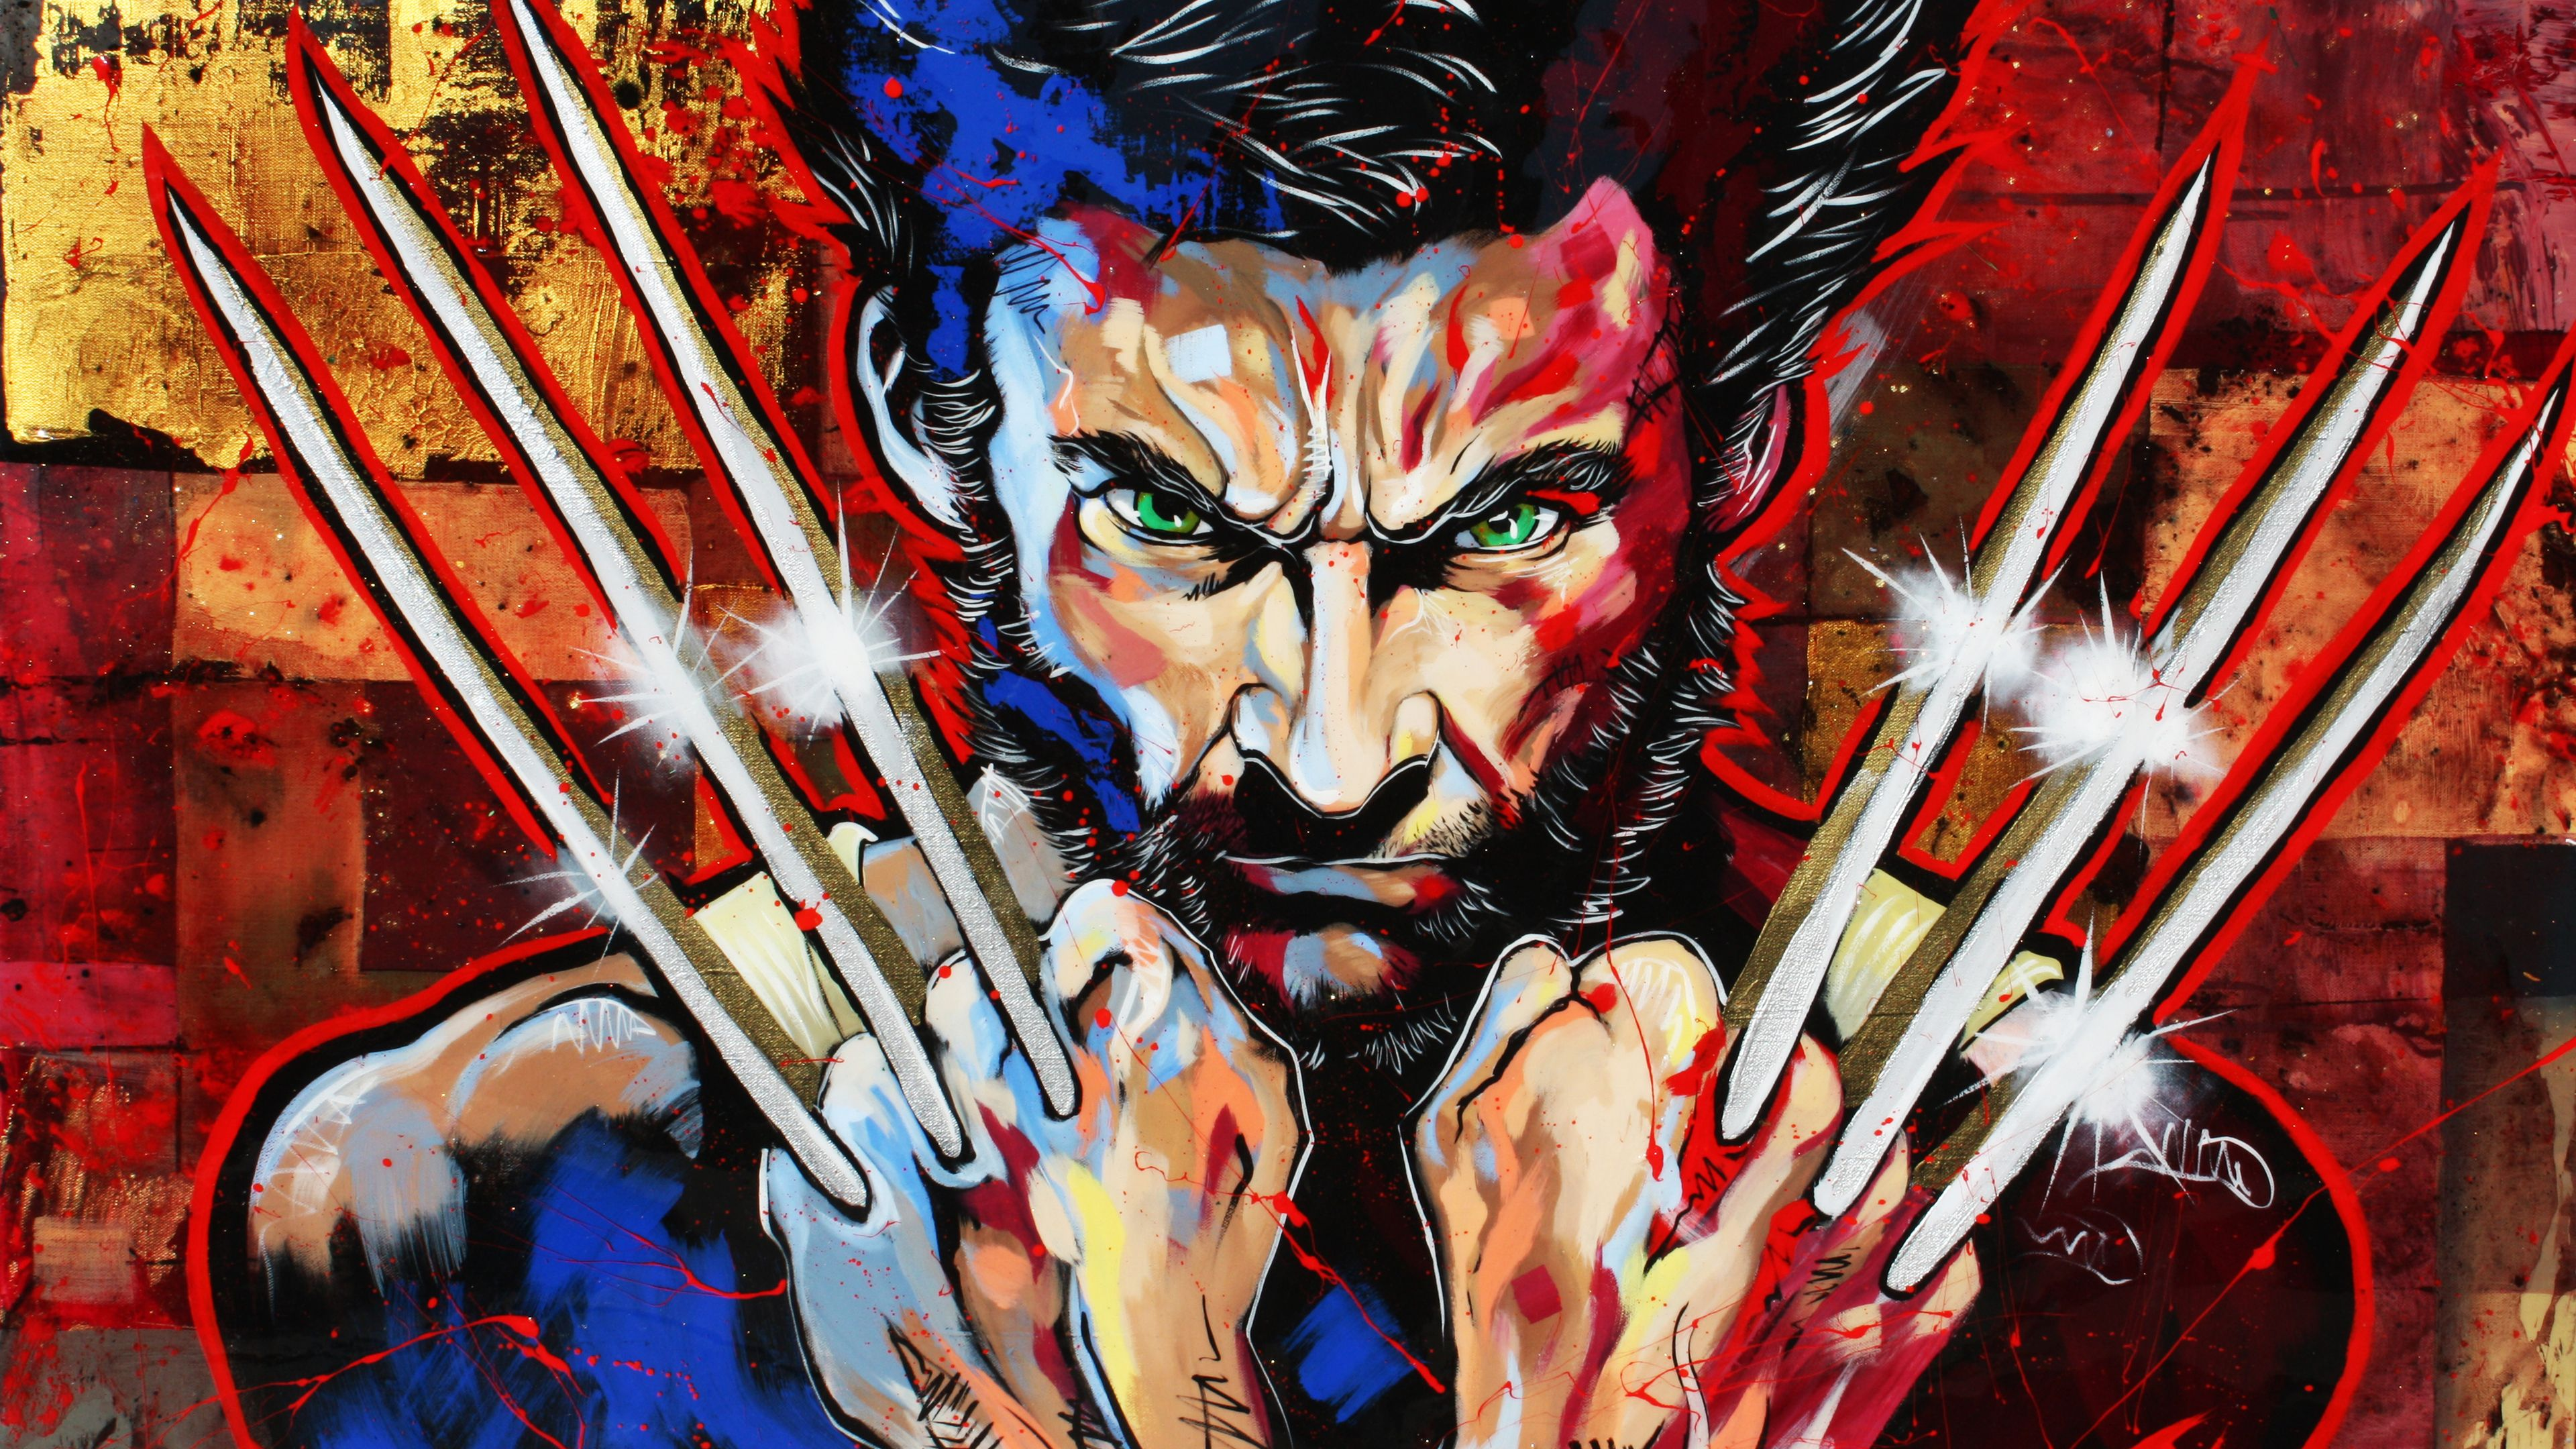 Wolverine 4k Wolverine Wallpapers Superheroes Wallpapers Hd Wallpapers 4k Wallpapers Wolverine Art Wolverine Logan Art Logan Wolverine